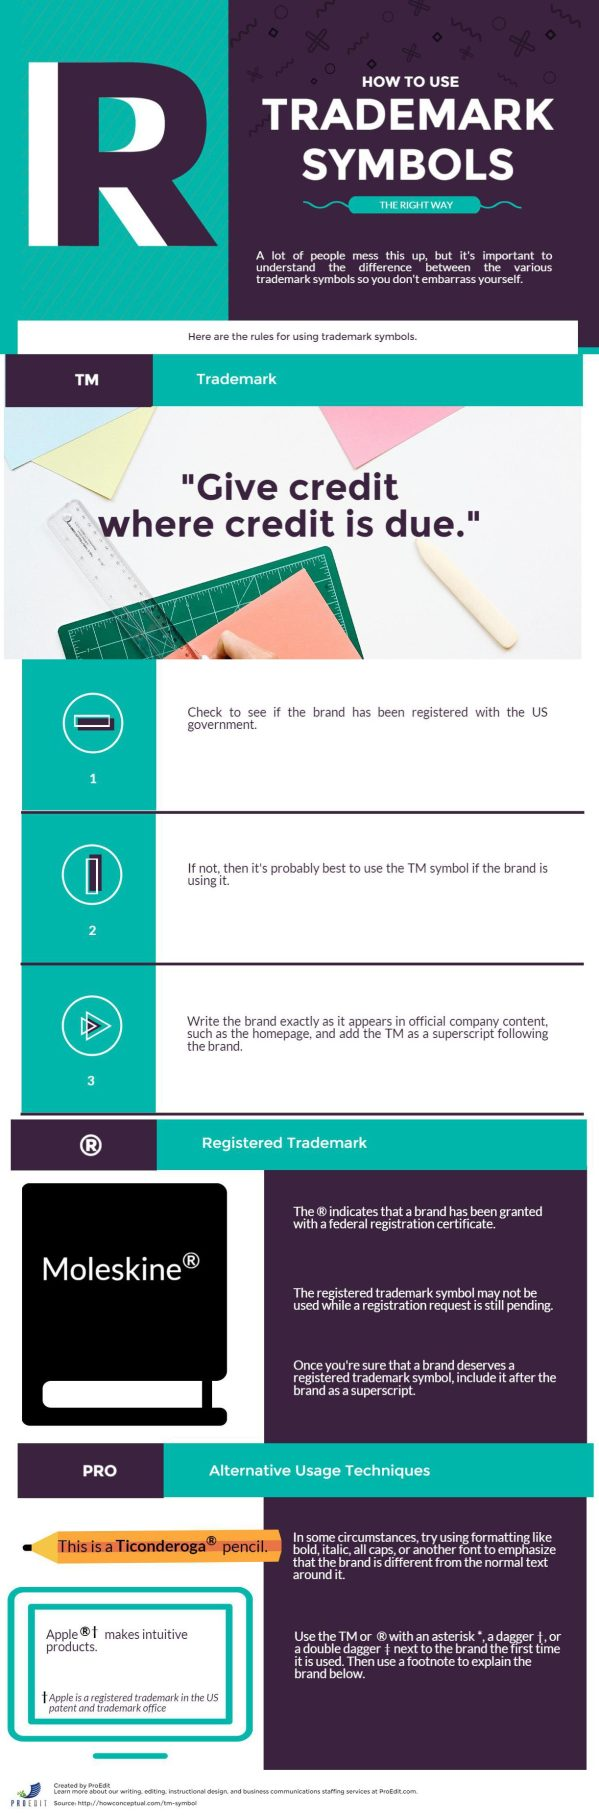 How to Use Trademarks Infographic